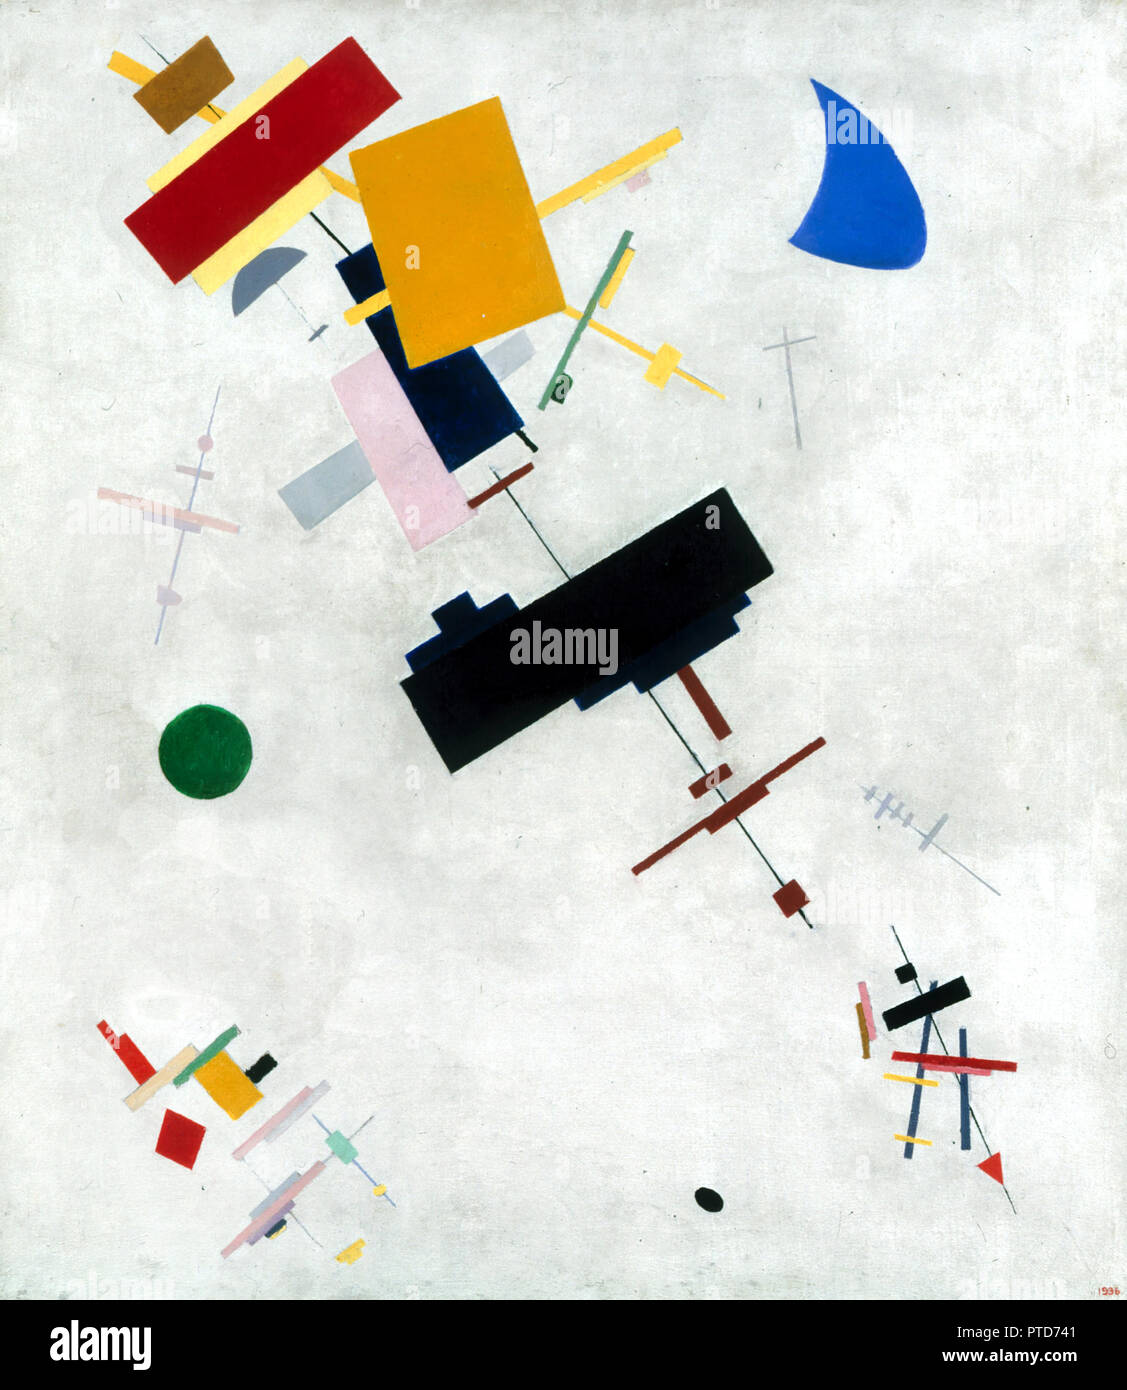 Kazimir Malevich, Suprematism 1915 Oil on canvas, Russian Museum, Saint Petersburg, Russia. - Stock Image